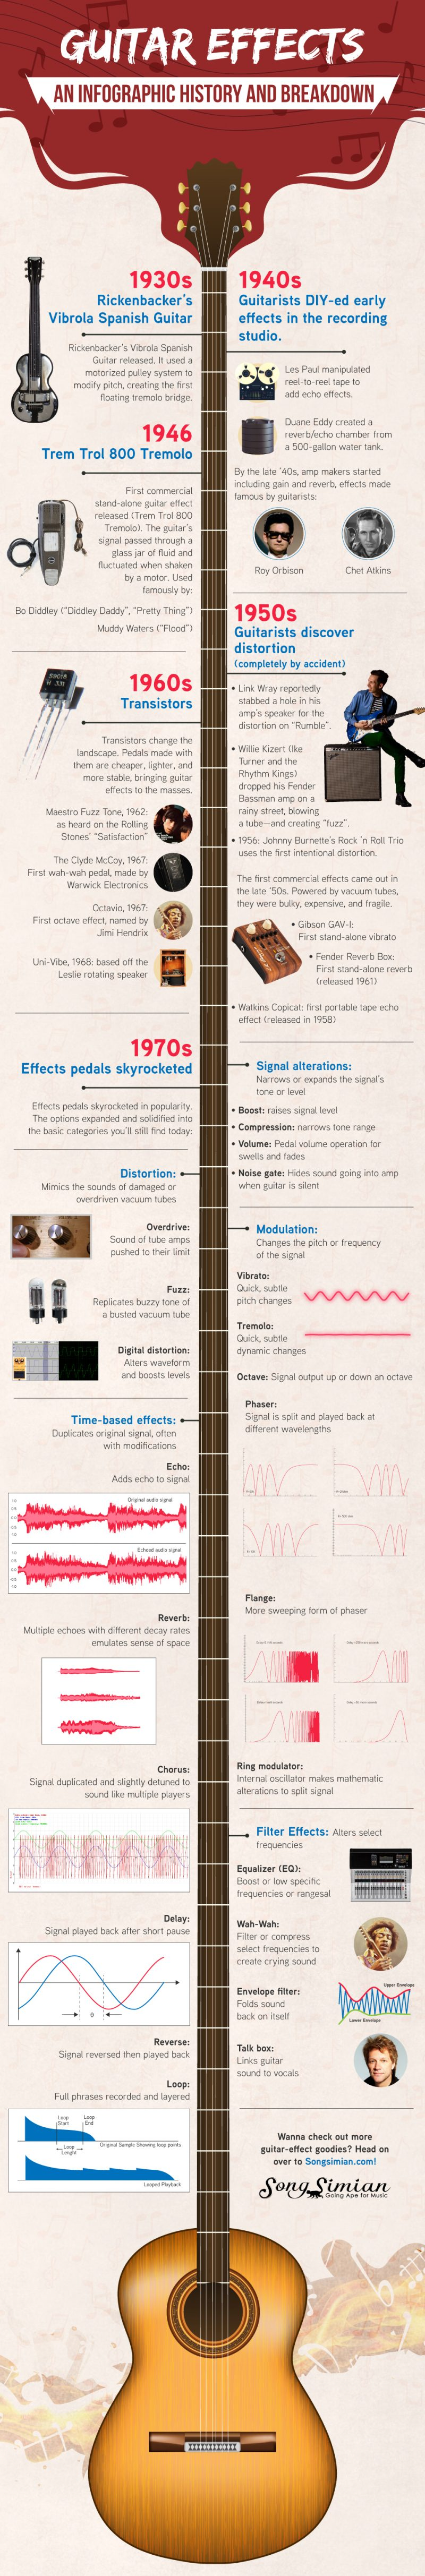 Guitar Effects: An Infographic History and Breakdown